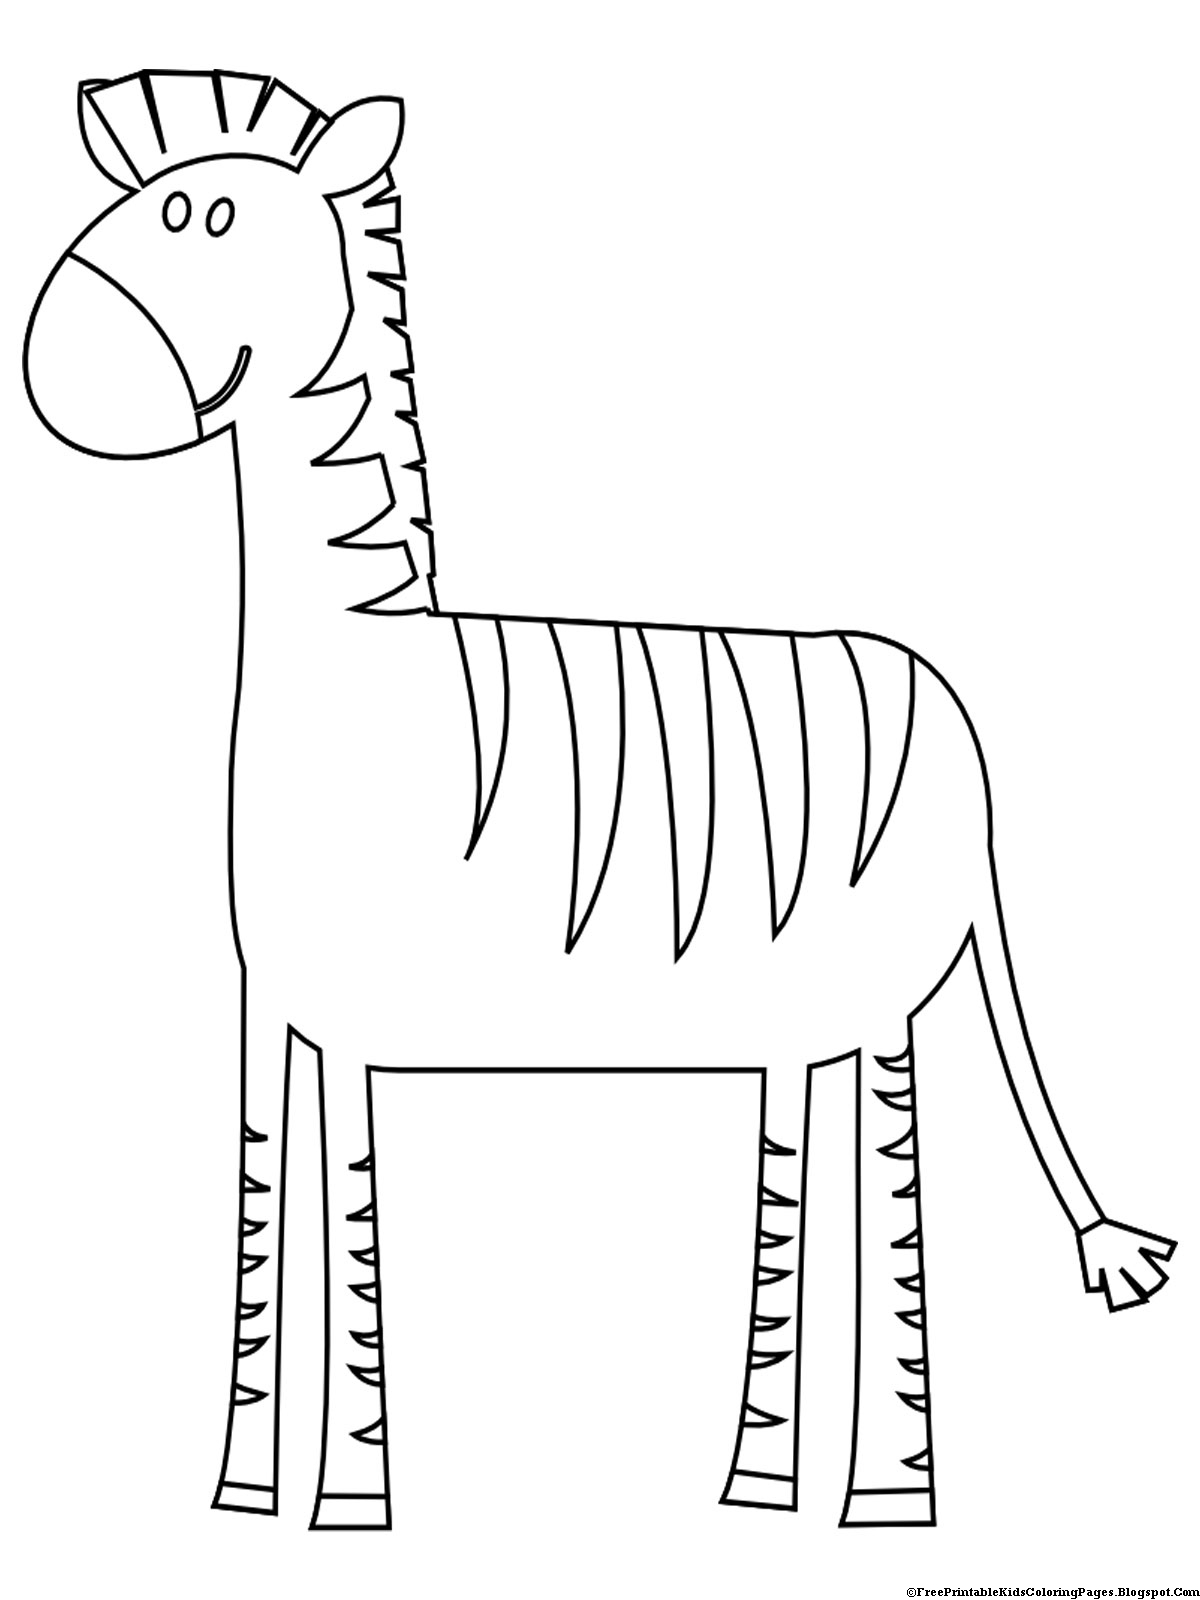 zebra coloring pages without stripes - photo #23